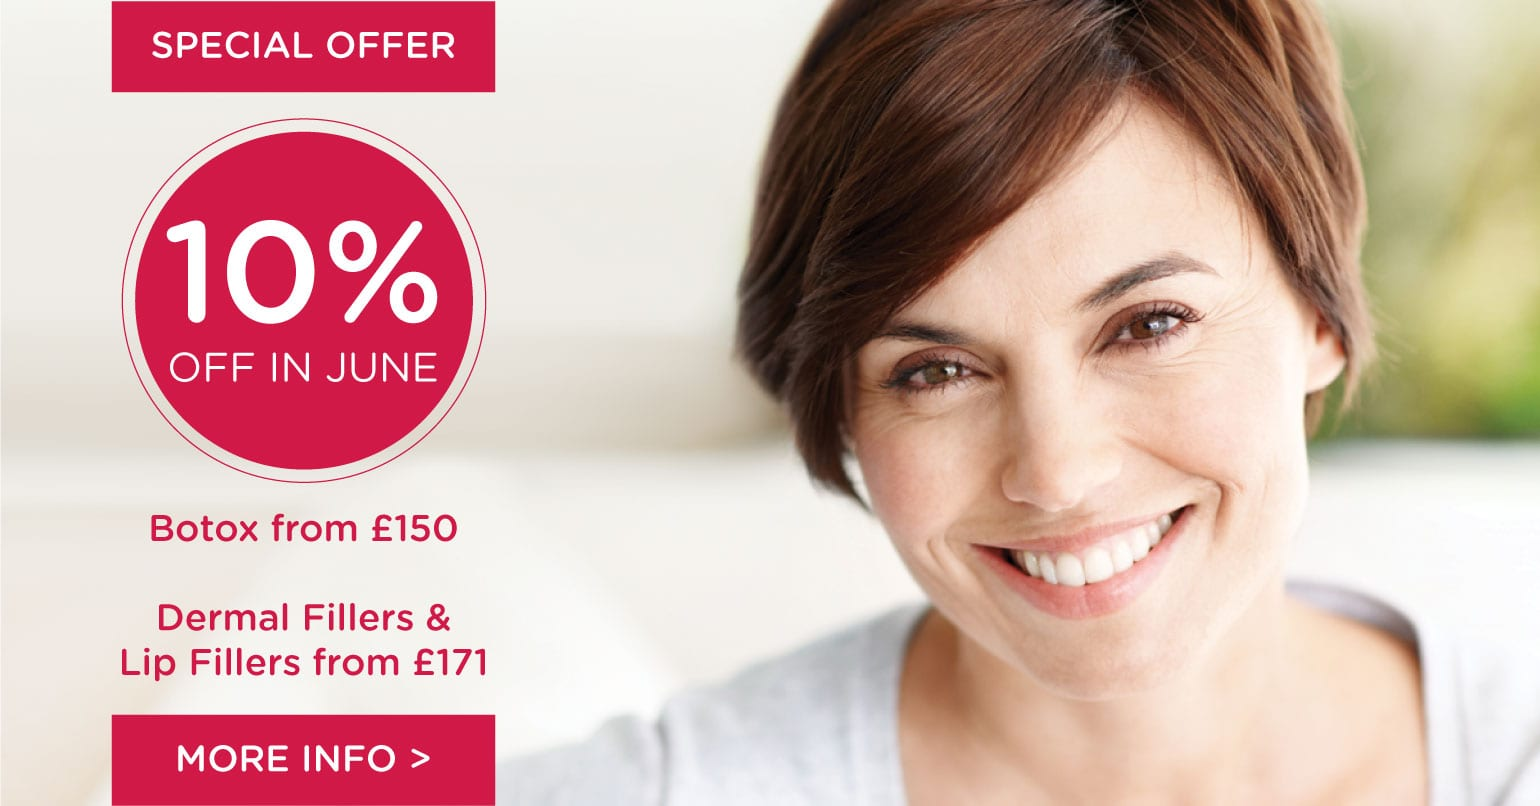 10% Off Injectable Treatments in June 2019